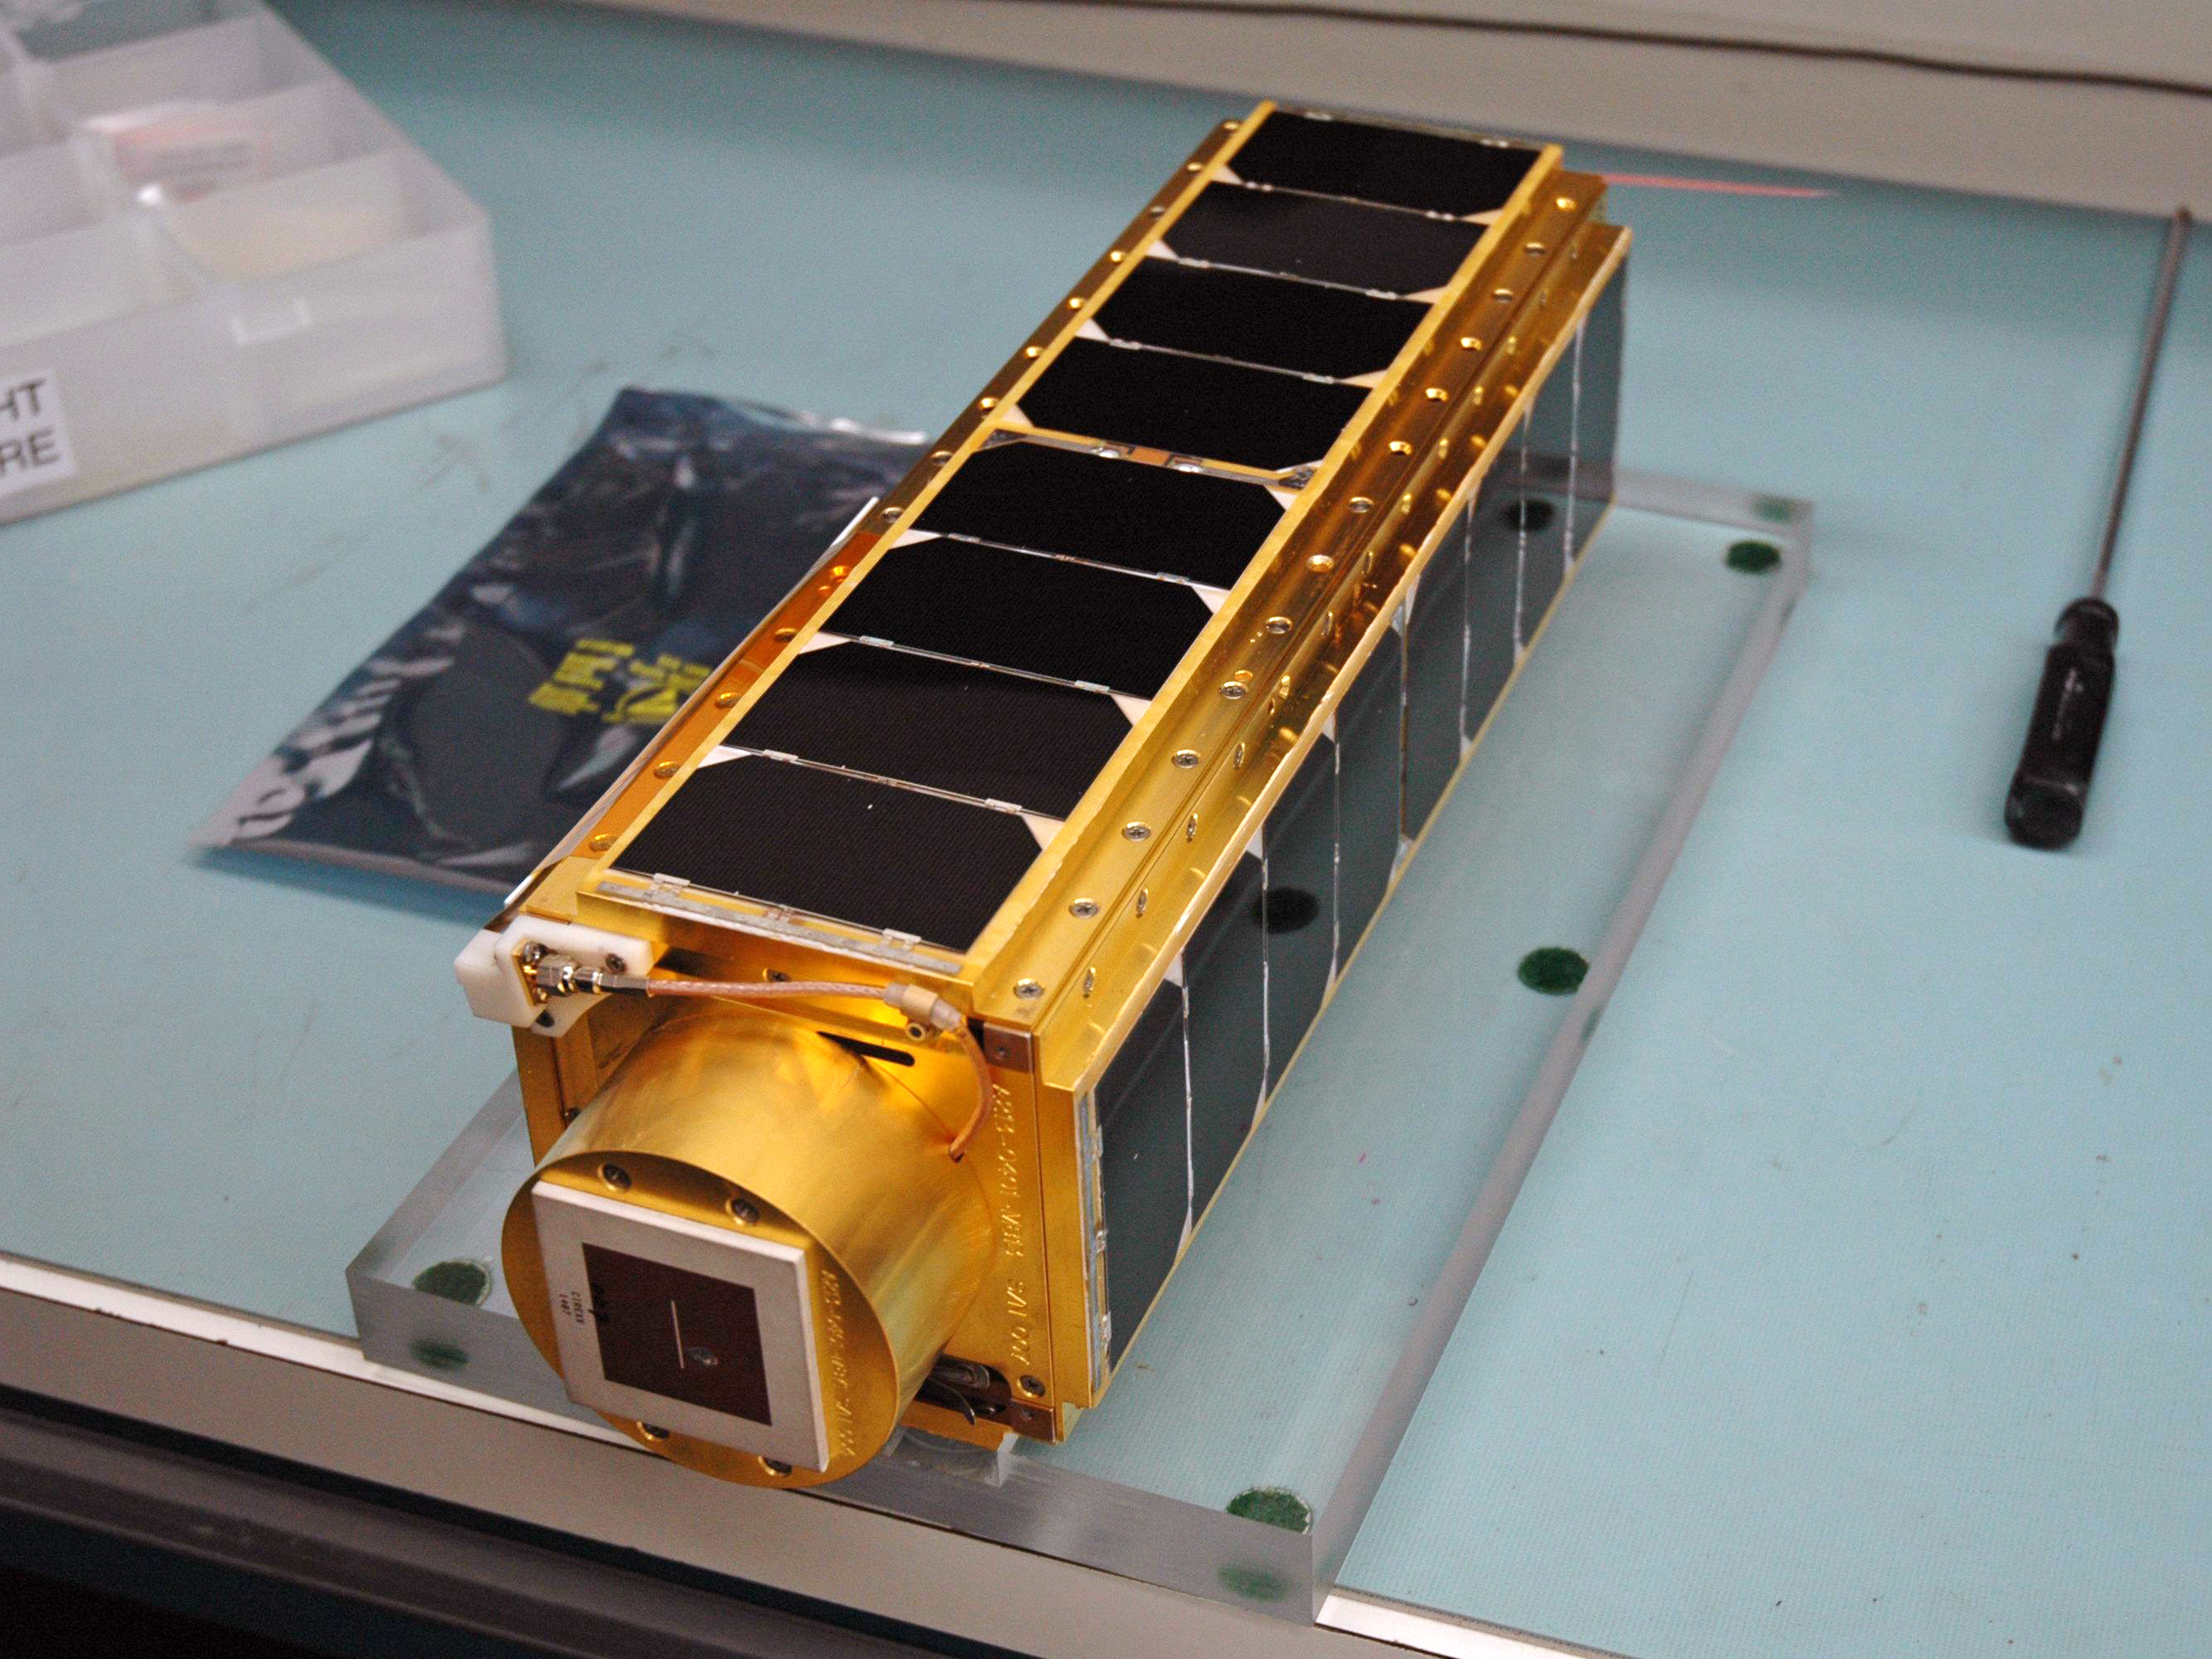 PharmaSat, developed by NASA Ames Research Center and launched in 2009, is a three-unit CubeSat to study antifungal drugs in microgravity.